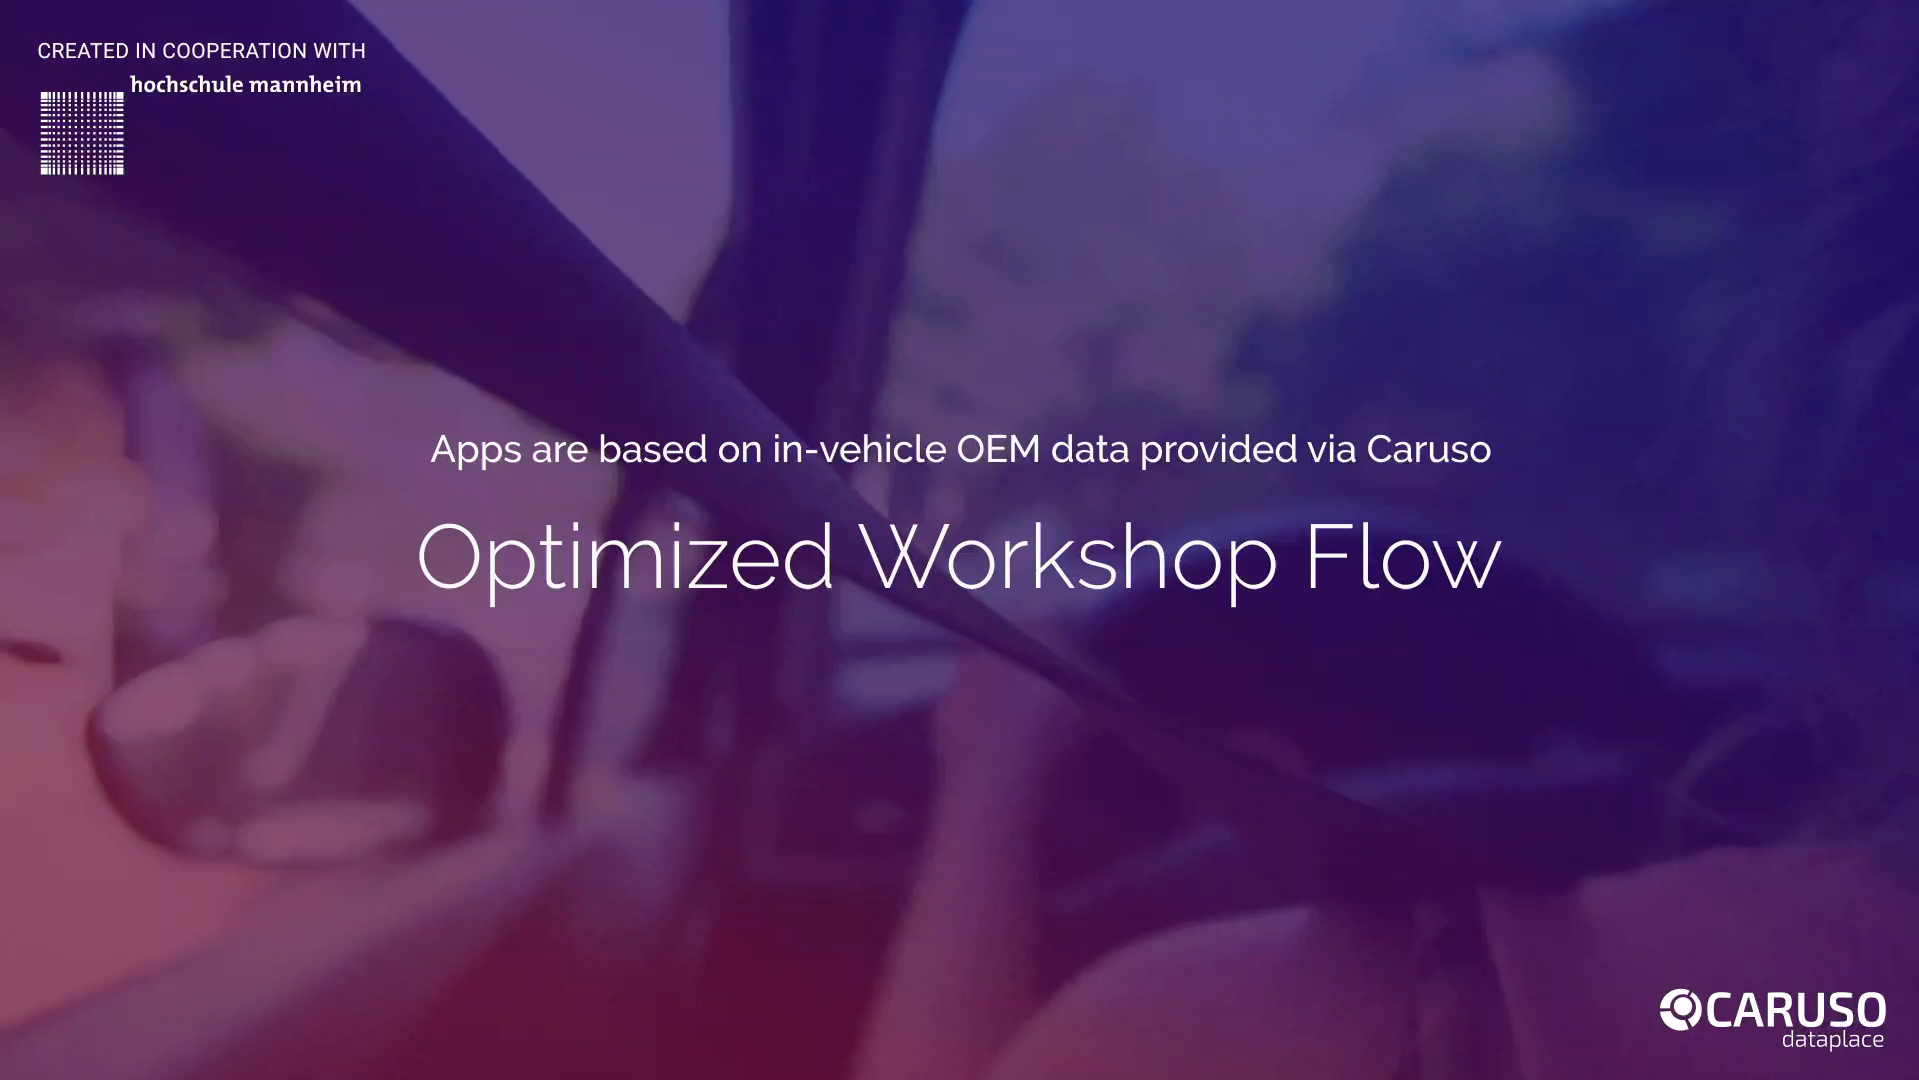 Optimized Workshop Flow